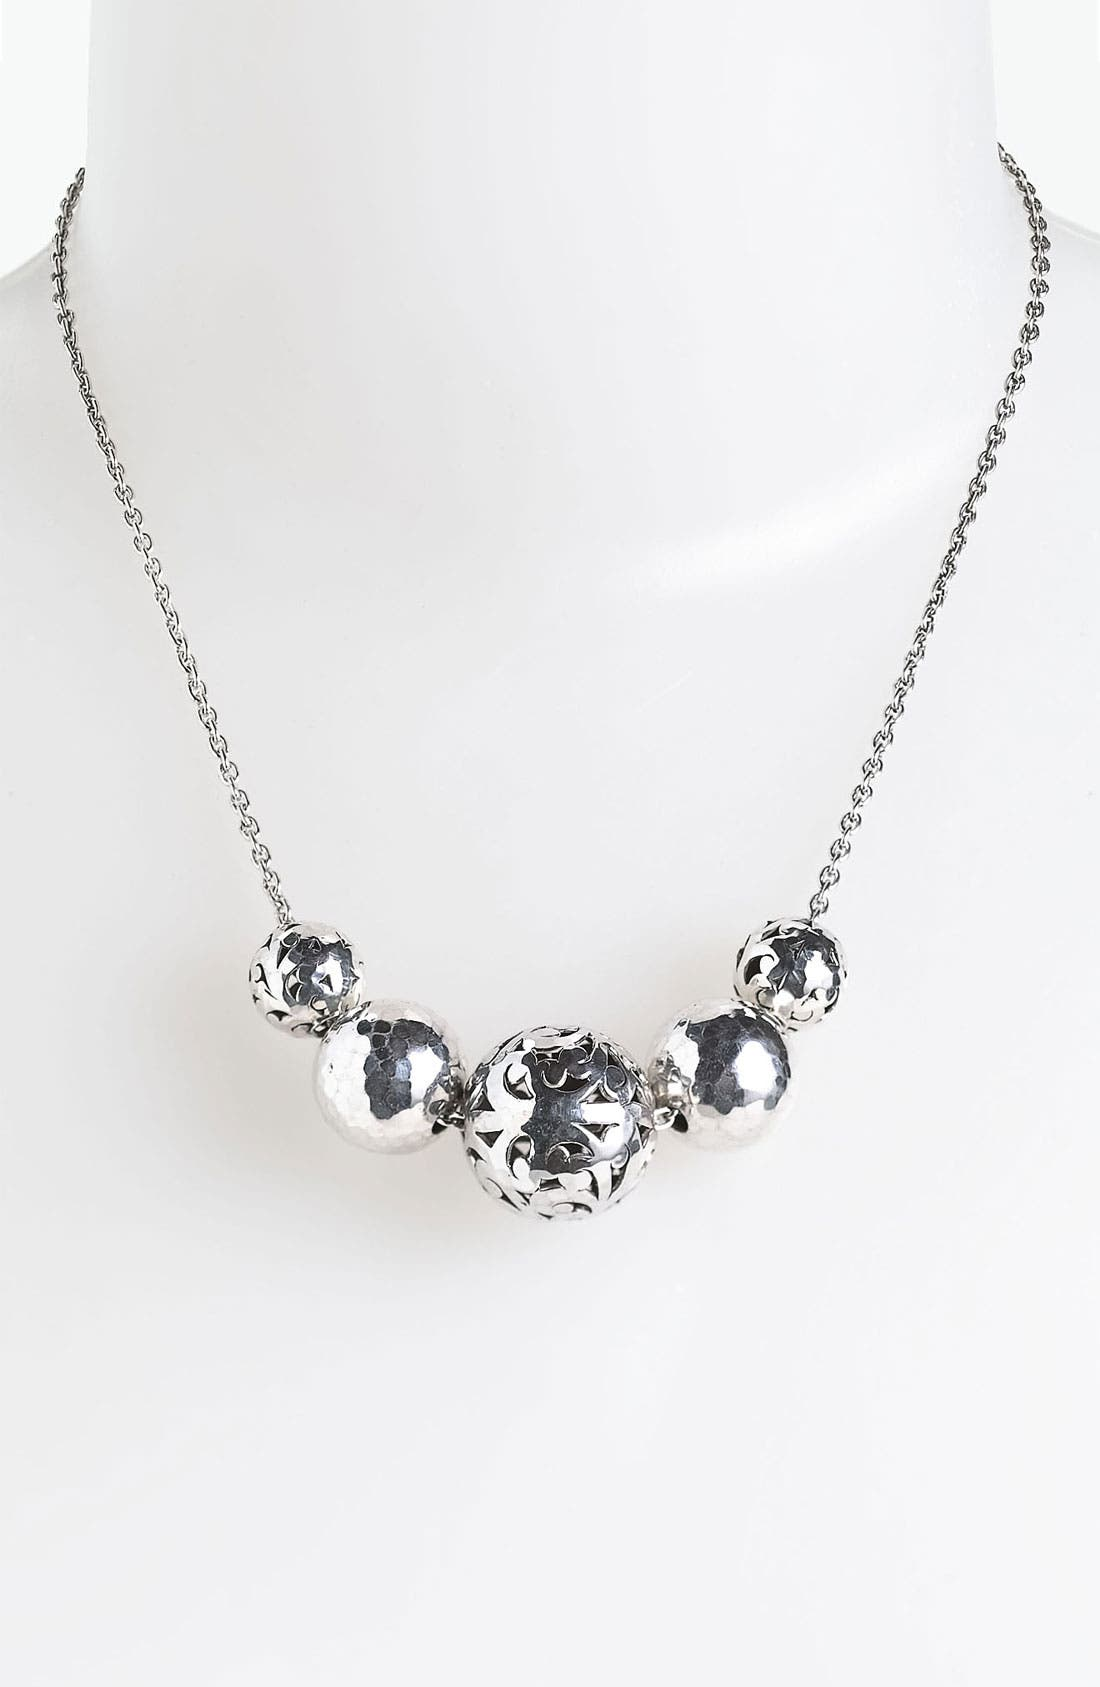 Alternate Image 1 Selected - Lois Hill 'Ball & Chain' Bead Necklace